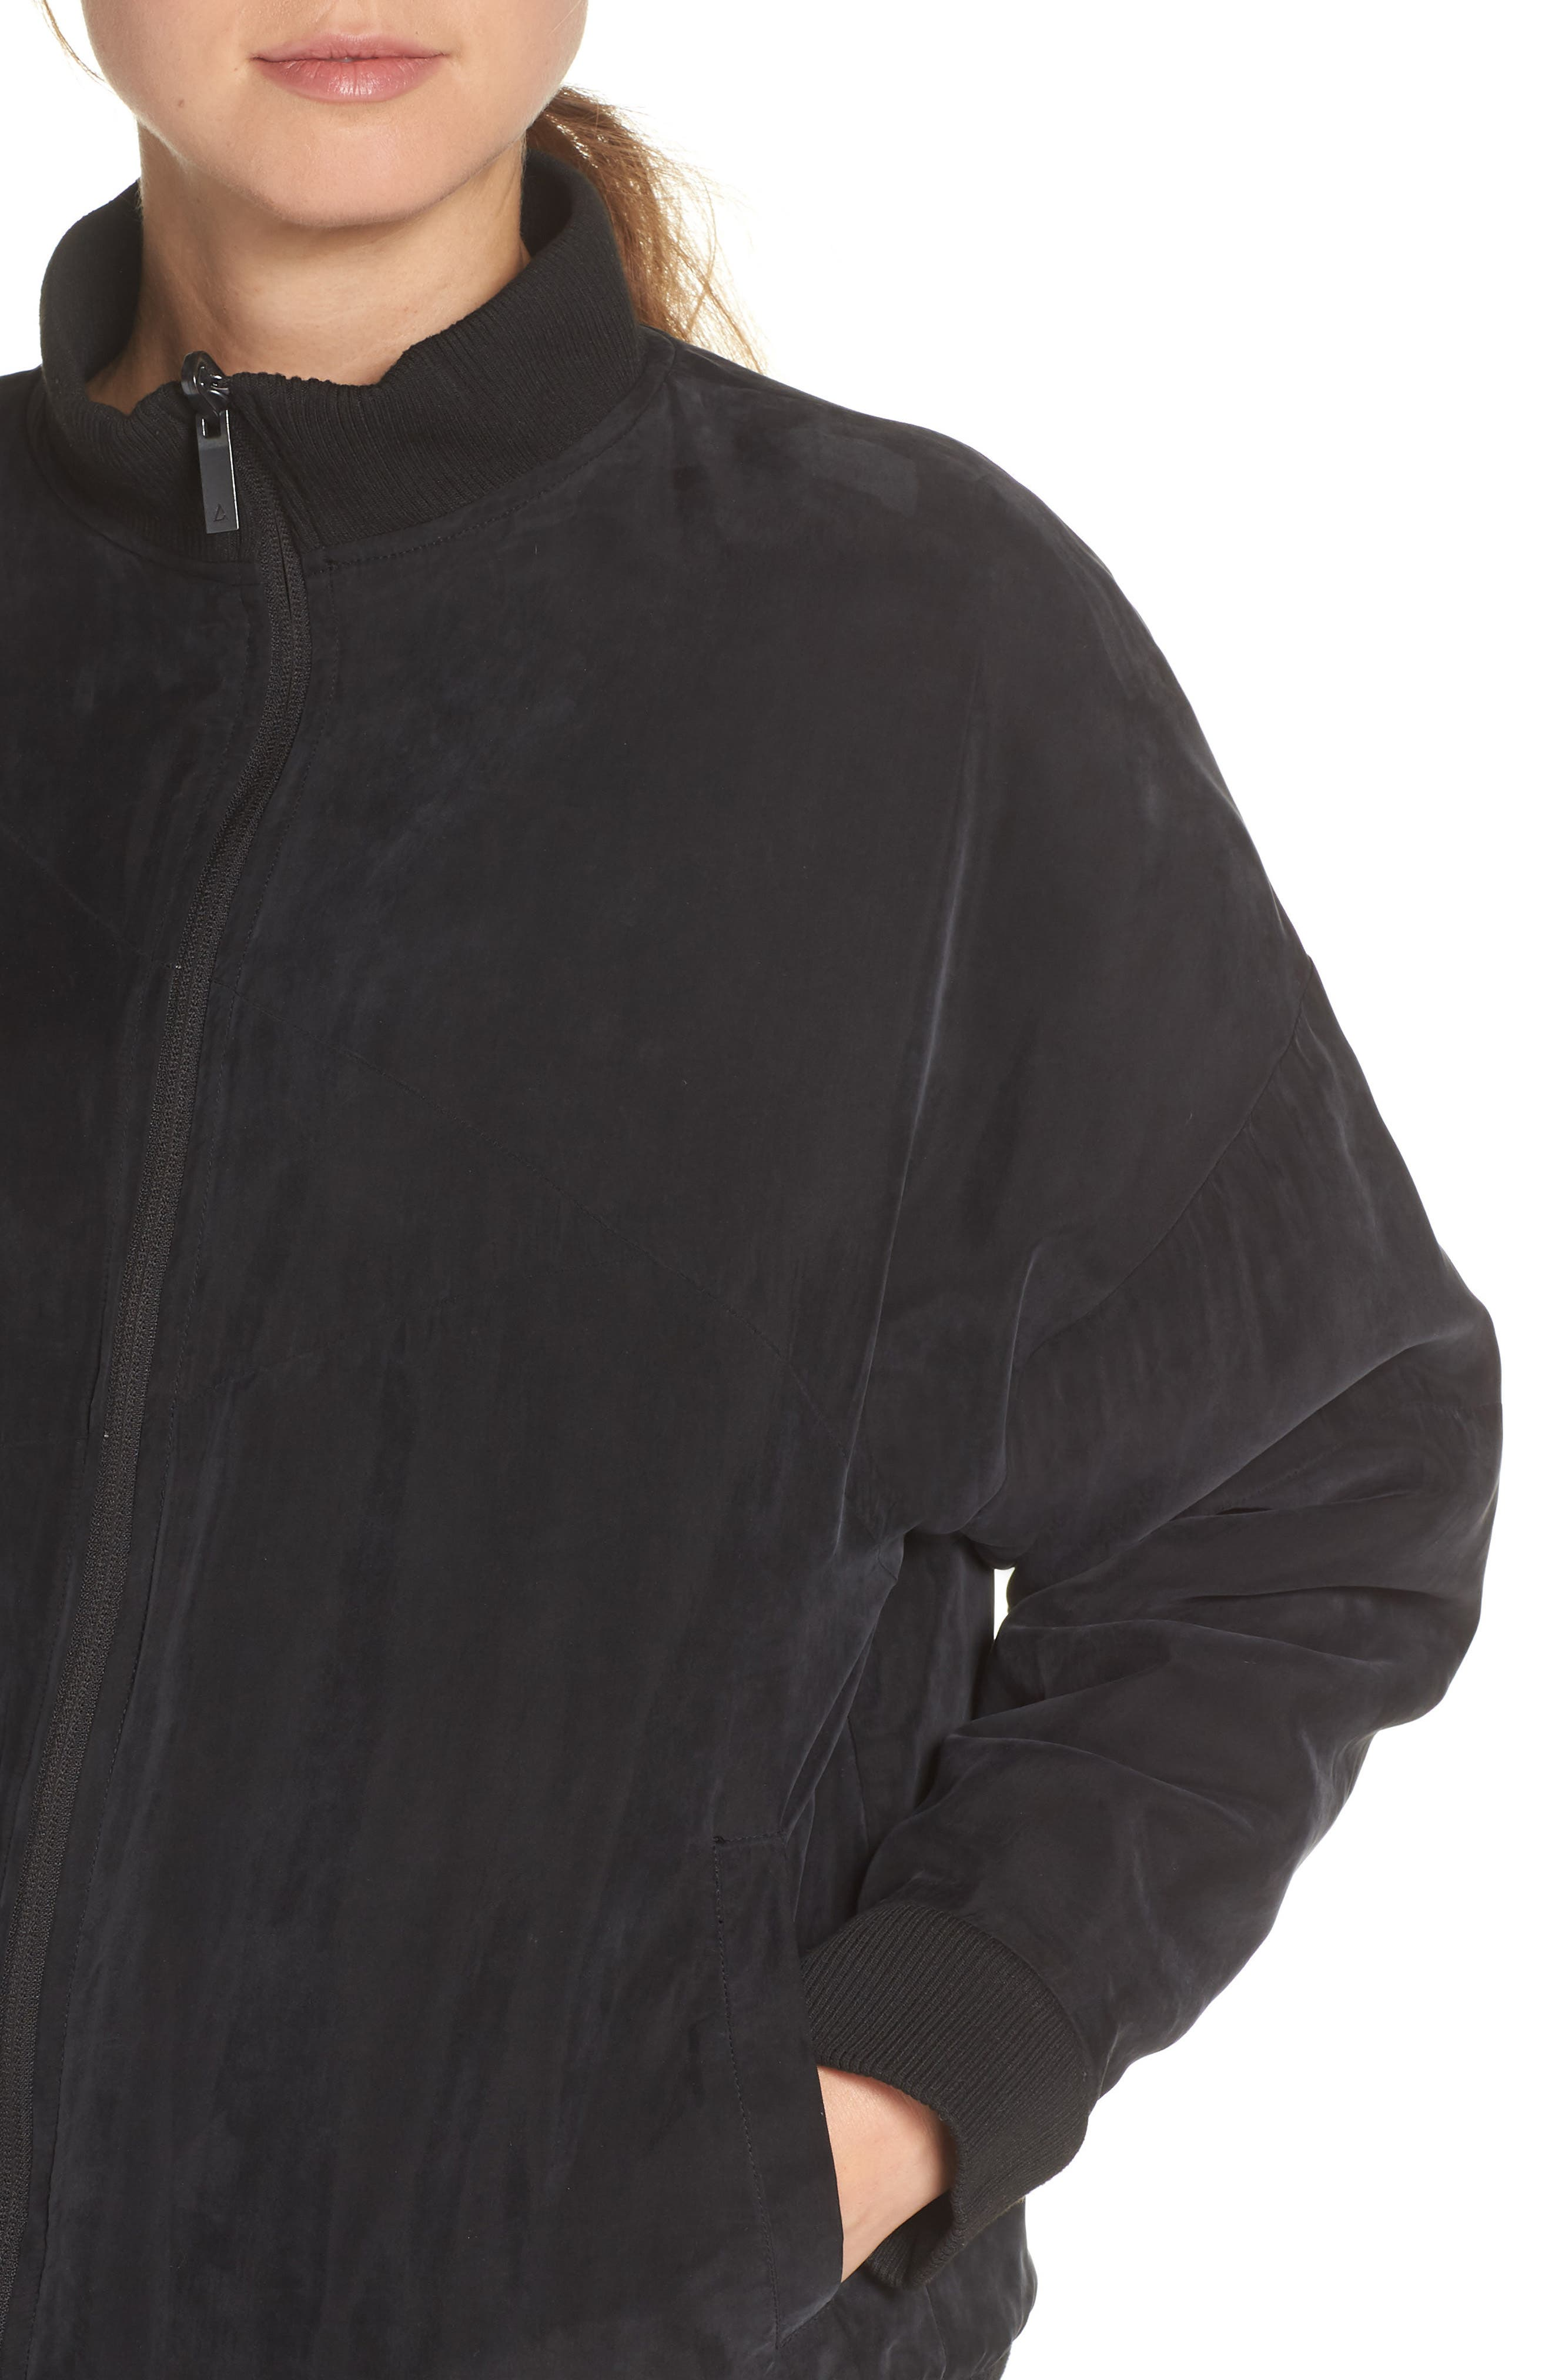 Arcs Reversible Bomber Jacket,                             Alternate thumbnail 6, color,                             BLACK